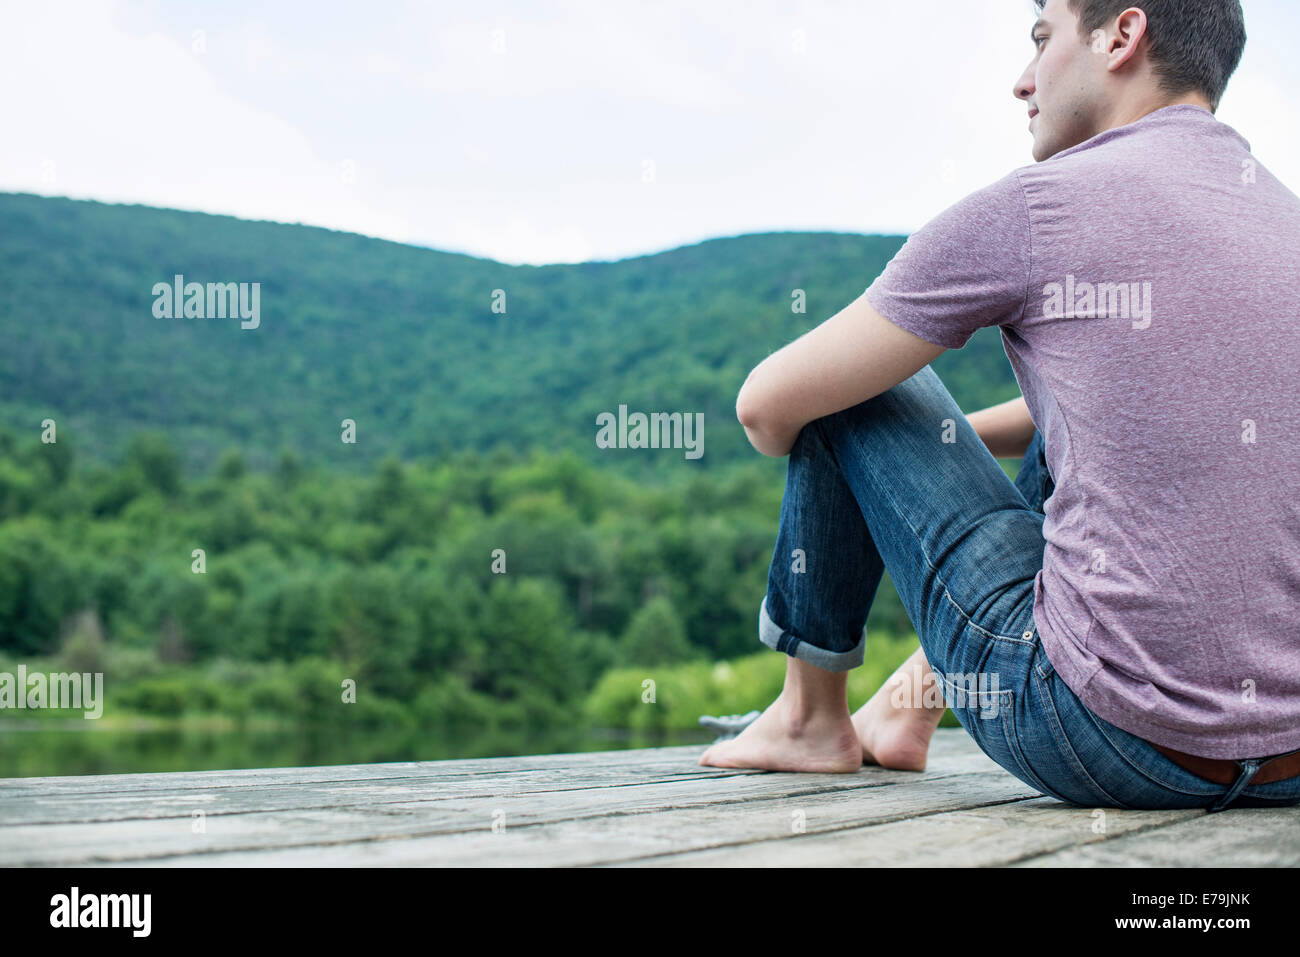 A man sitting on a wooden pier by a lake in summer - Stock Image